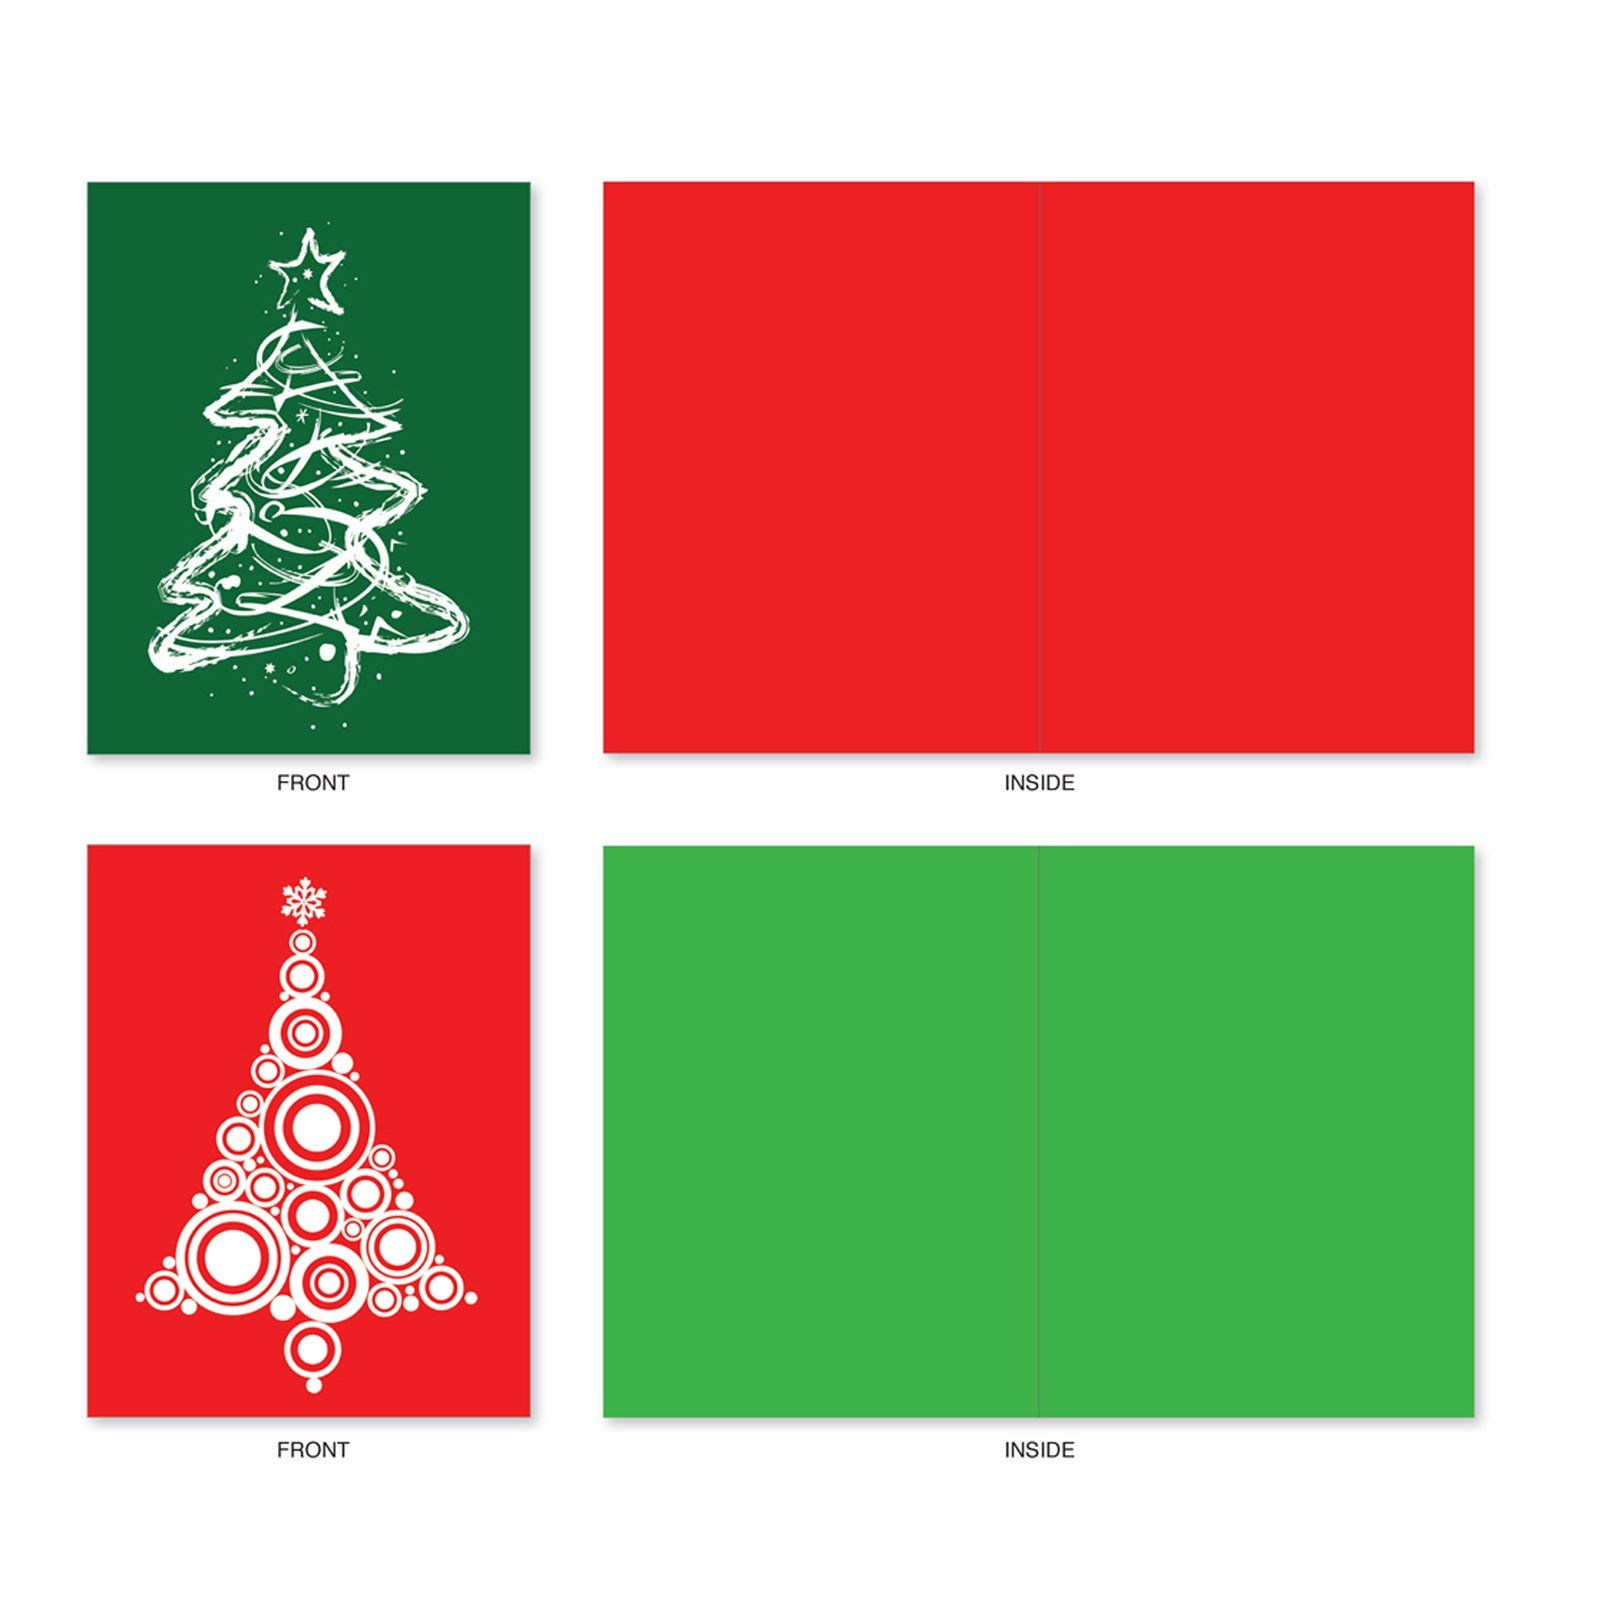 10 Assorted A Fanciful Firsa Blank All Occasion Cards With Envelopes Mini 4a X 5 25a Note Cards With M Green Stationery Modern Christmas Tree Note Cards